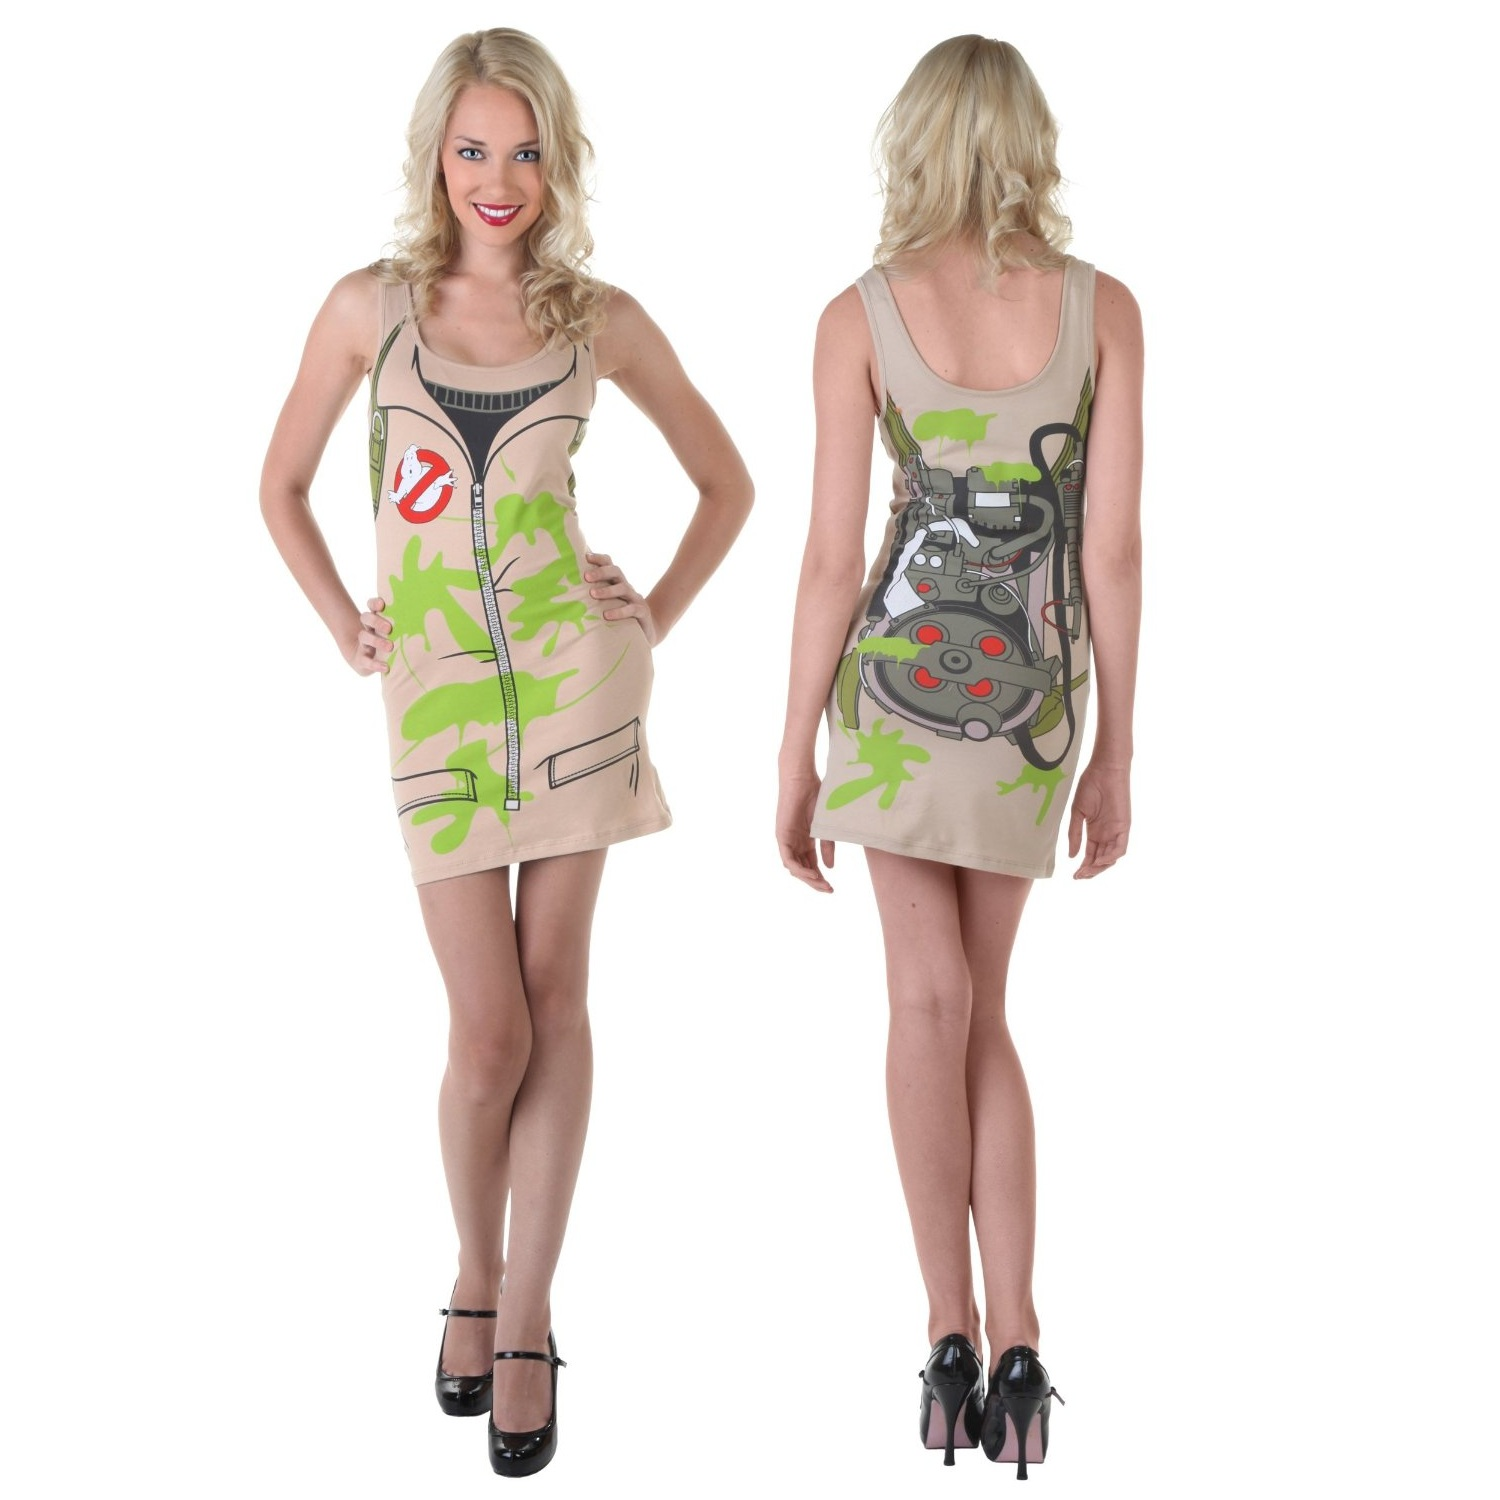 Details about ghostbusters womens tank dress costume tunic top uniform